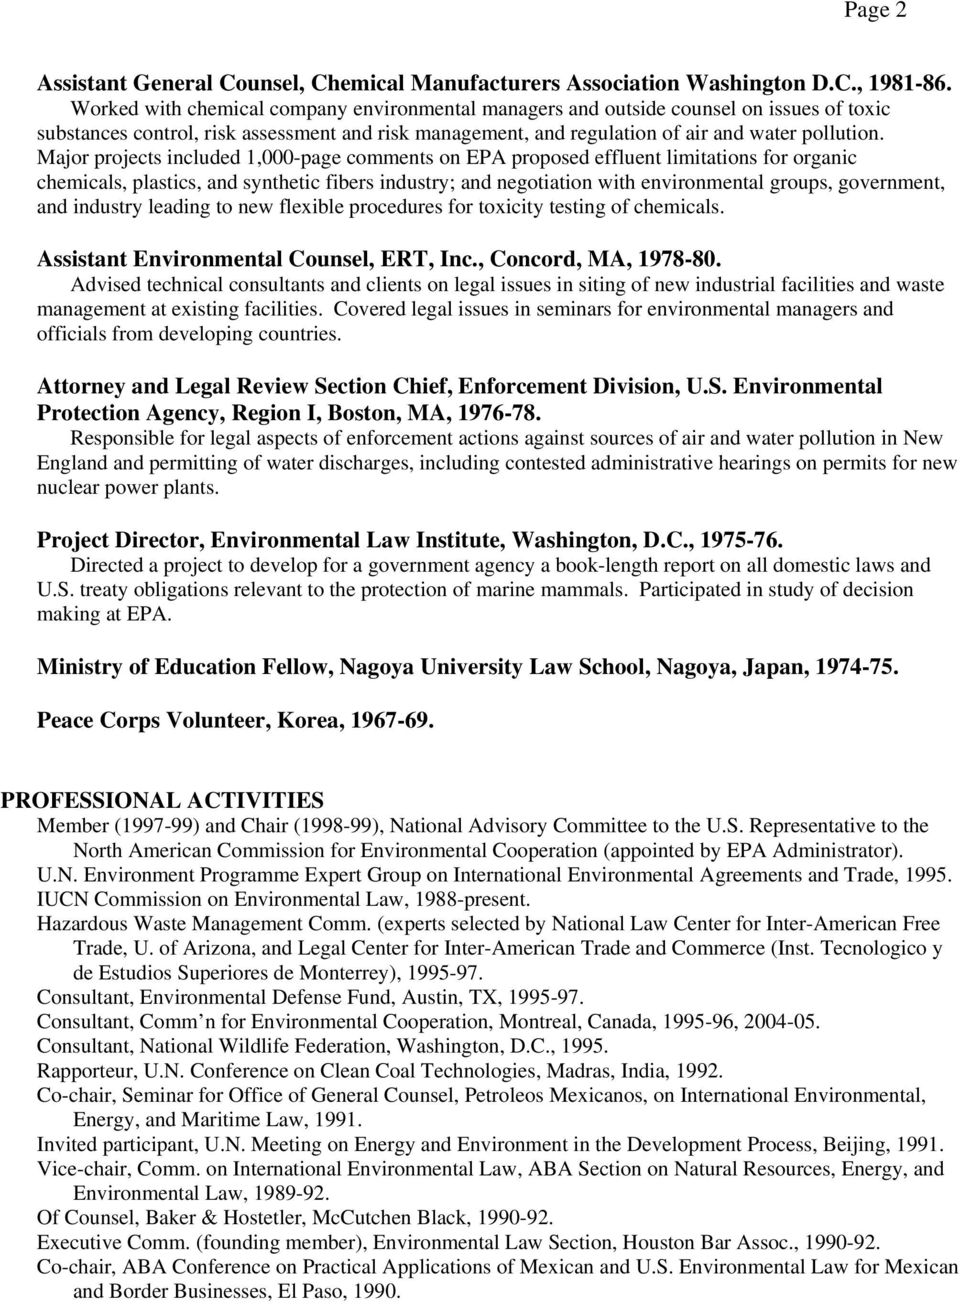 Major projects included 1,000-page comments on EPA proposed effluent limitations for organic chemicals, plastics, and synthetic fibers industry; and negotiation with environmental groups, government,